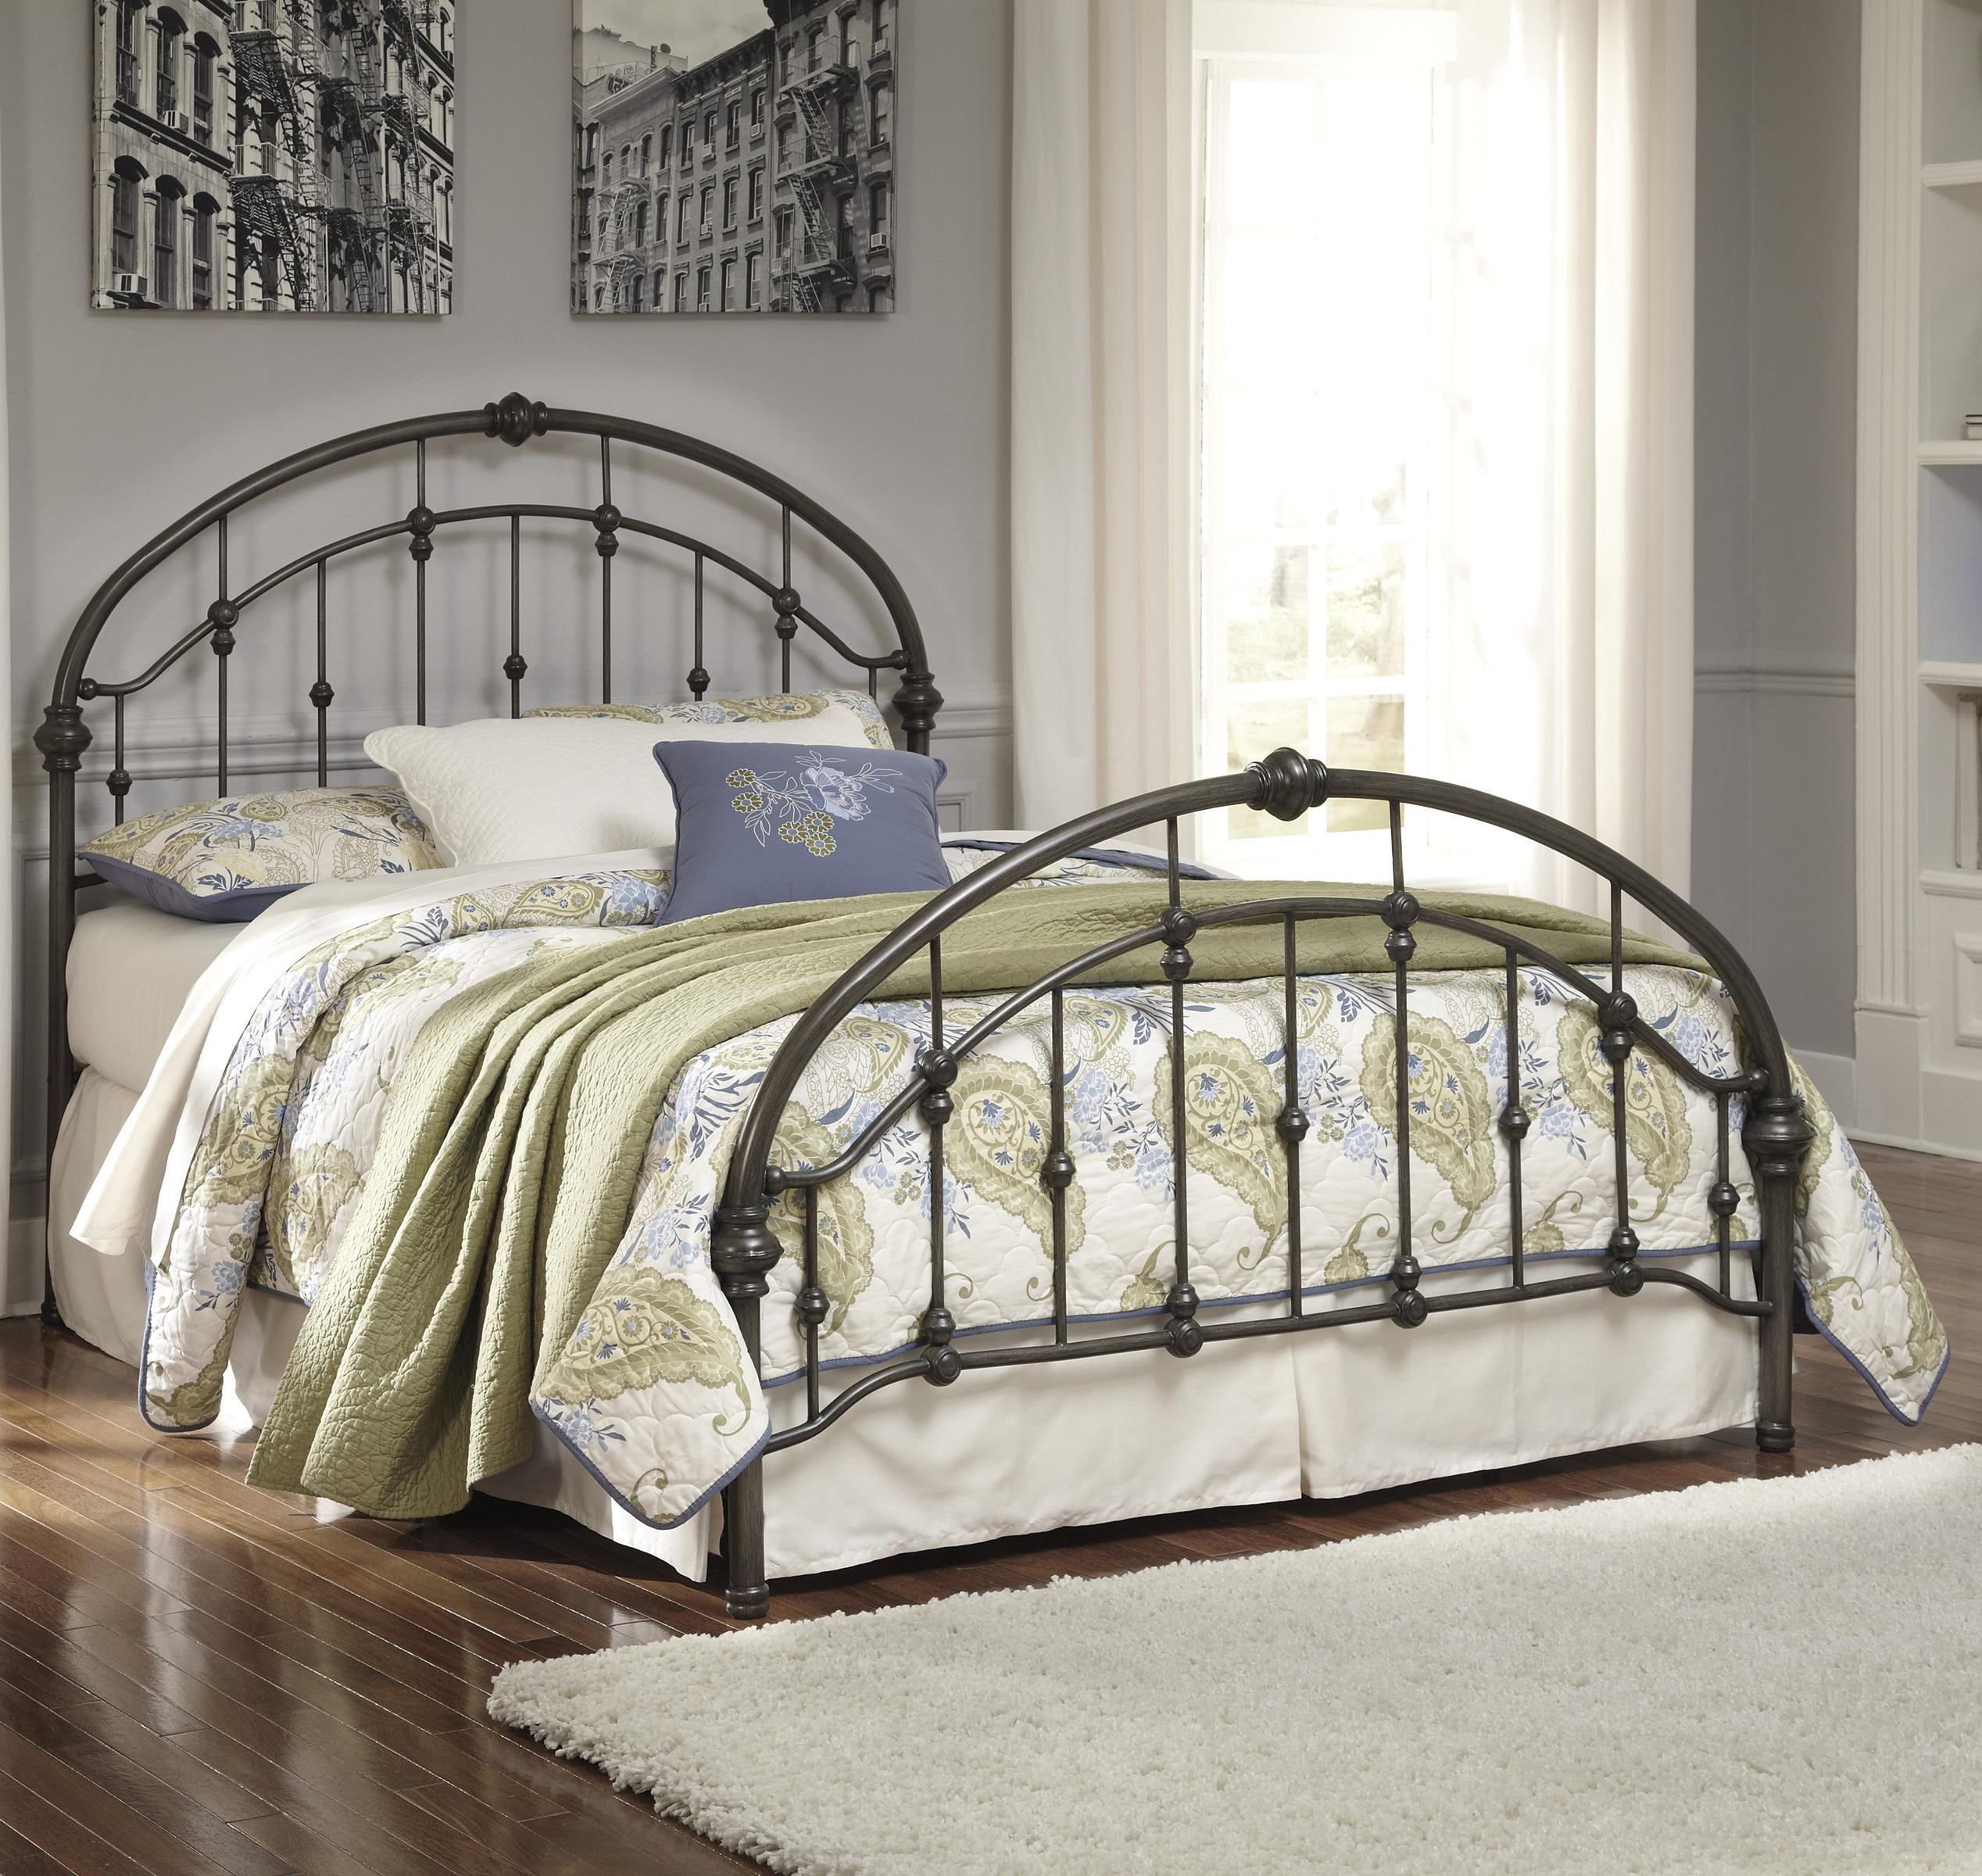 Signature Design By Ashley Nashburg B280 181 Queen Arched Metal Bed In Bronze Color Finish